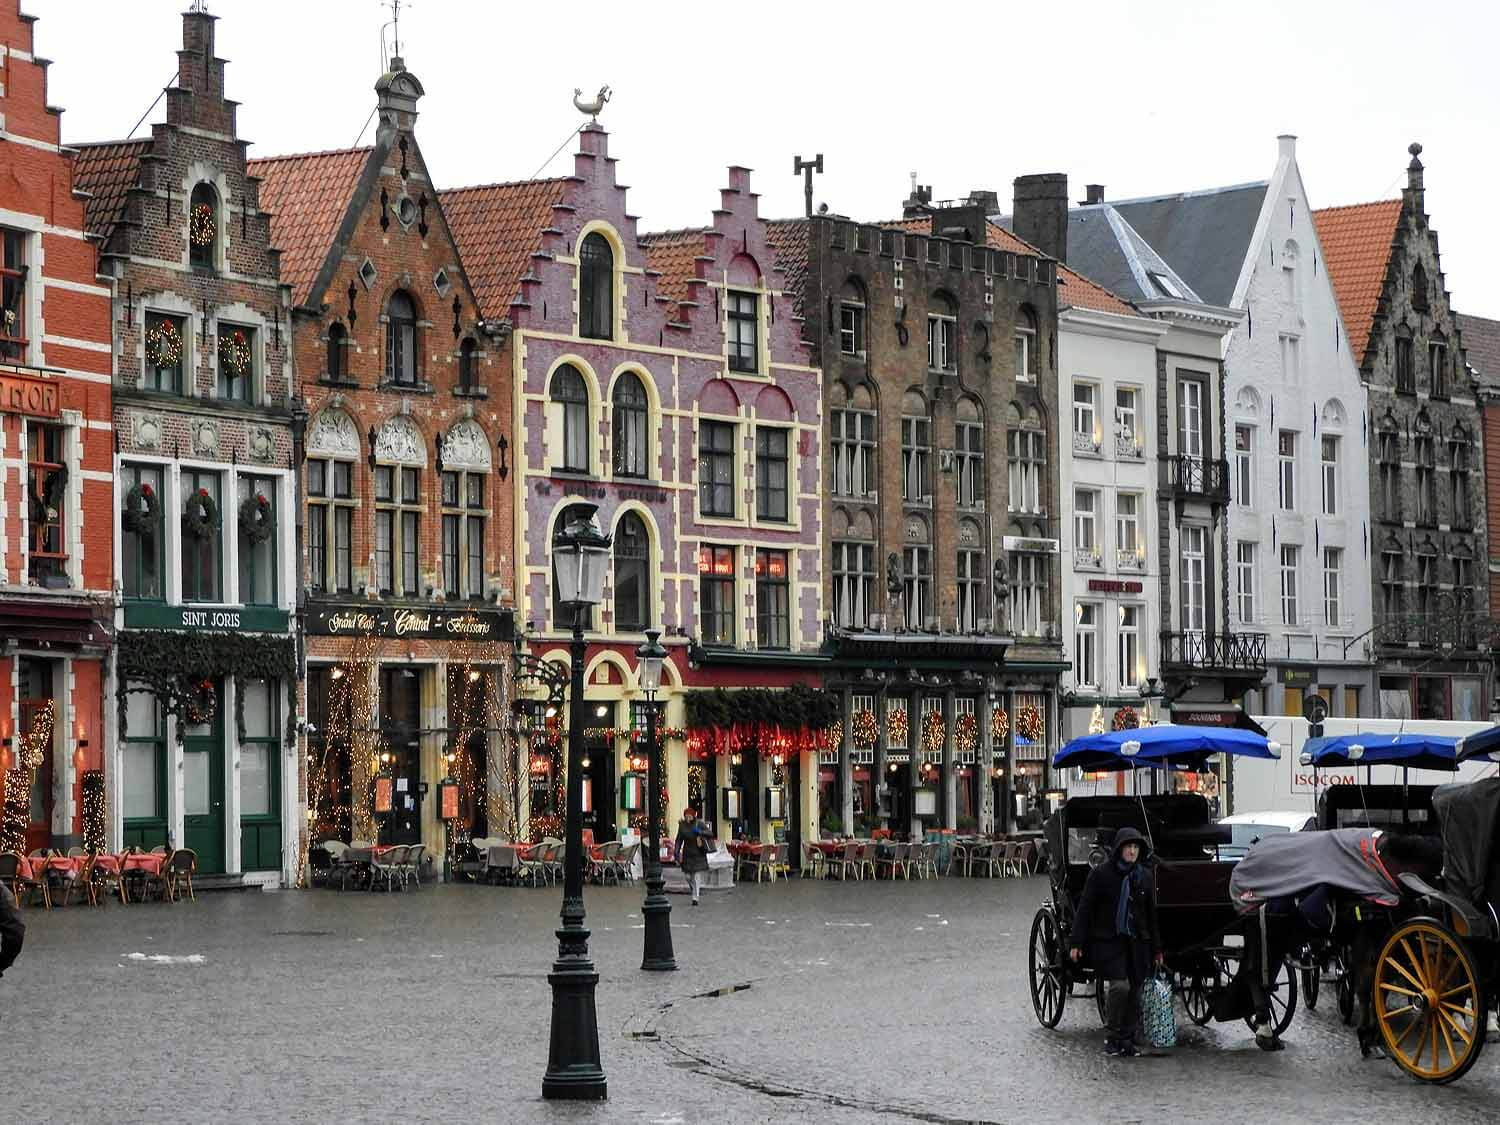 belgium-bruges-main-square-brick-buildings.jpg